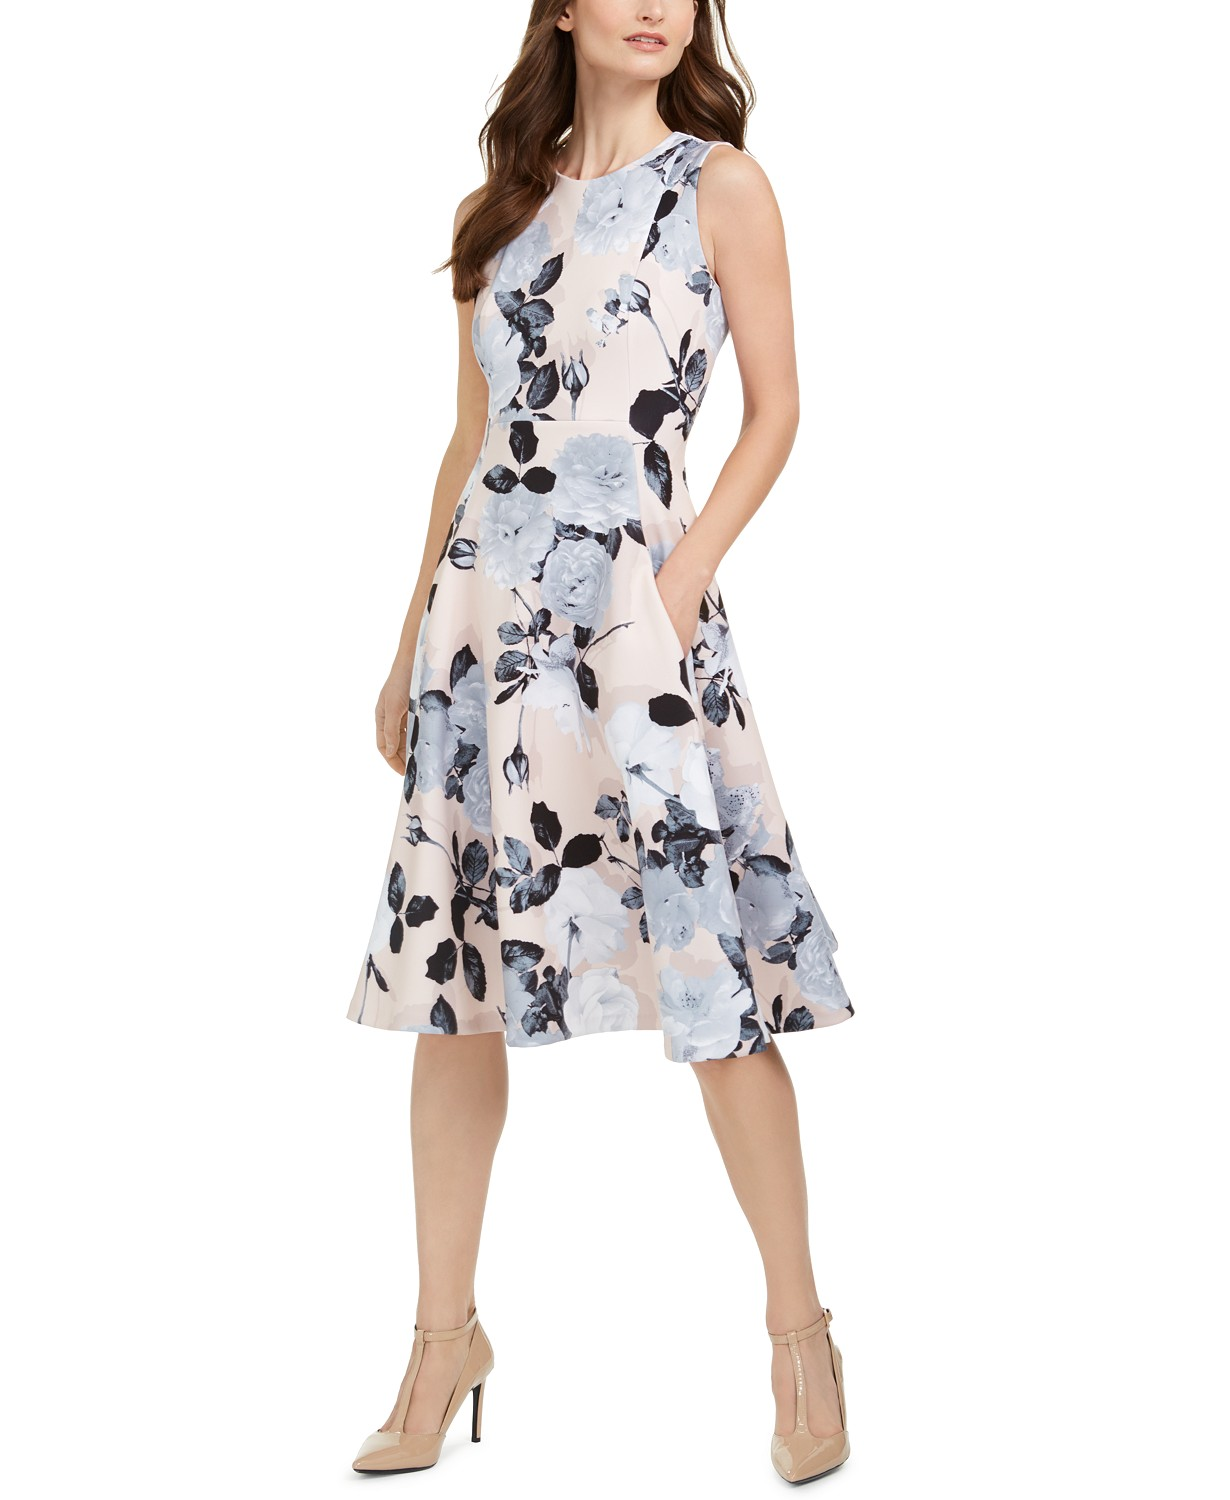 MACYS DEAL OF THE DAY! BEST SELLING DRESSES ALL UNDER $50!